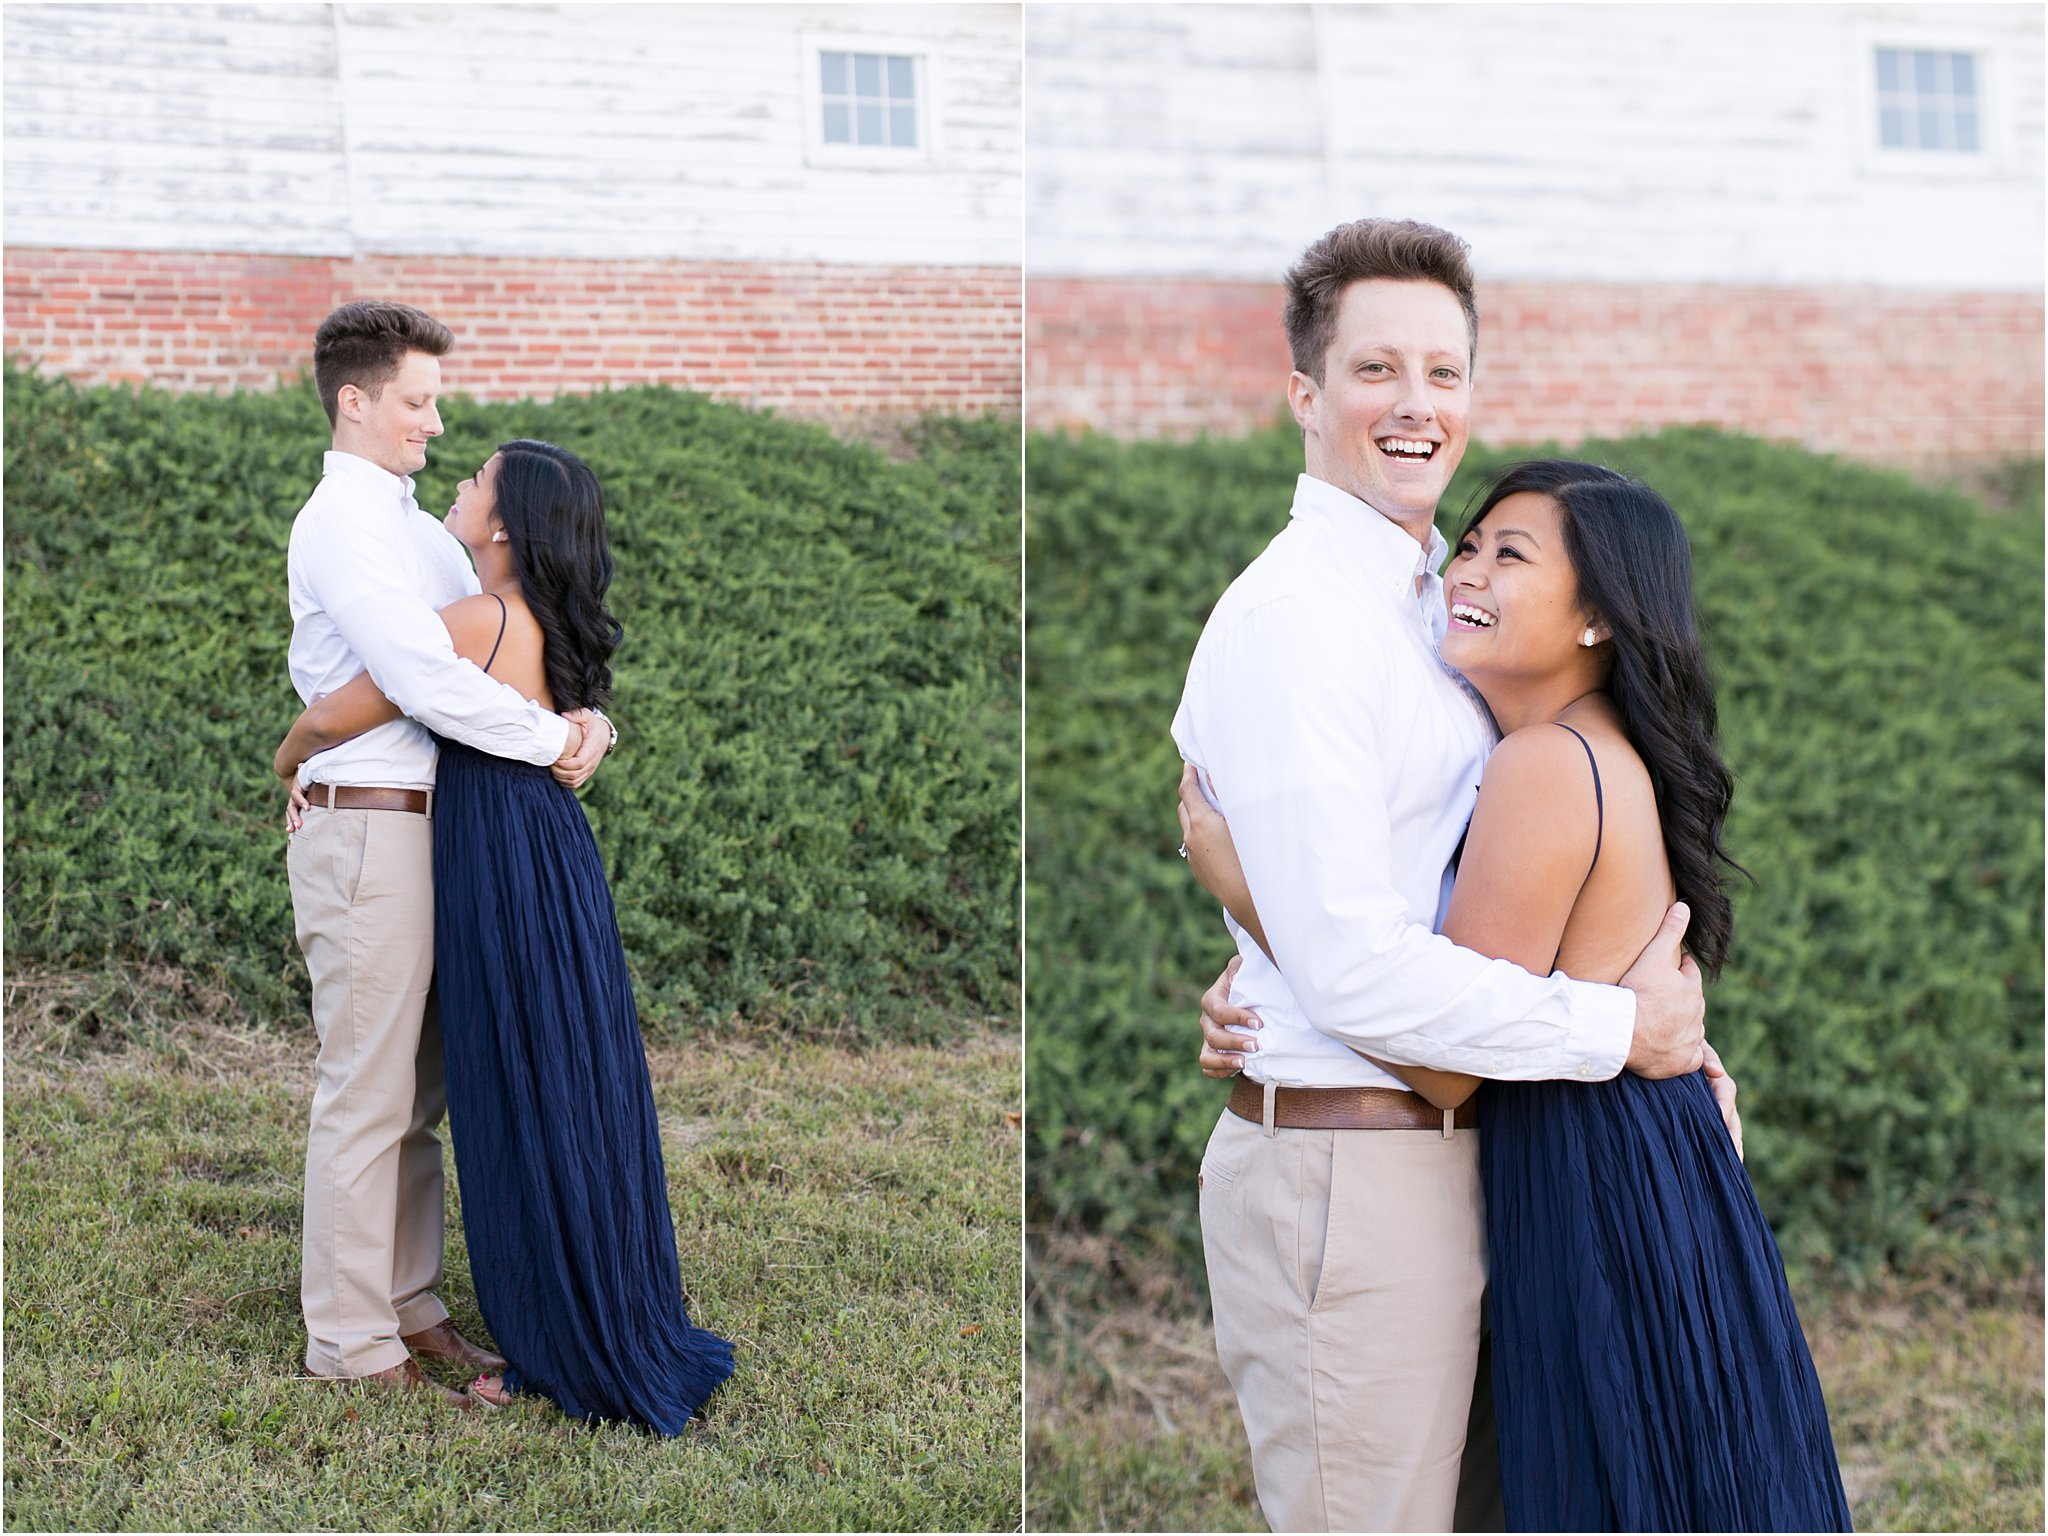 jessica_ryan_photography_virginia_smithfield_historical_downtown_engagement_portraits_candid_authentic_3715